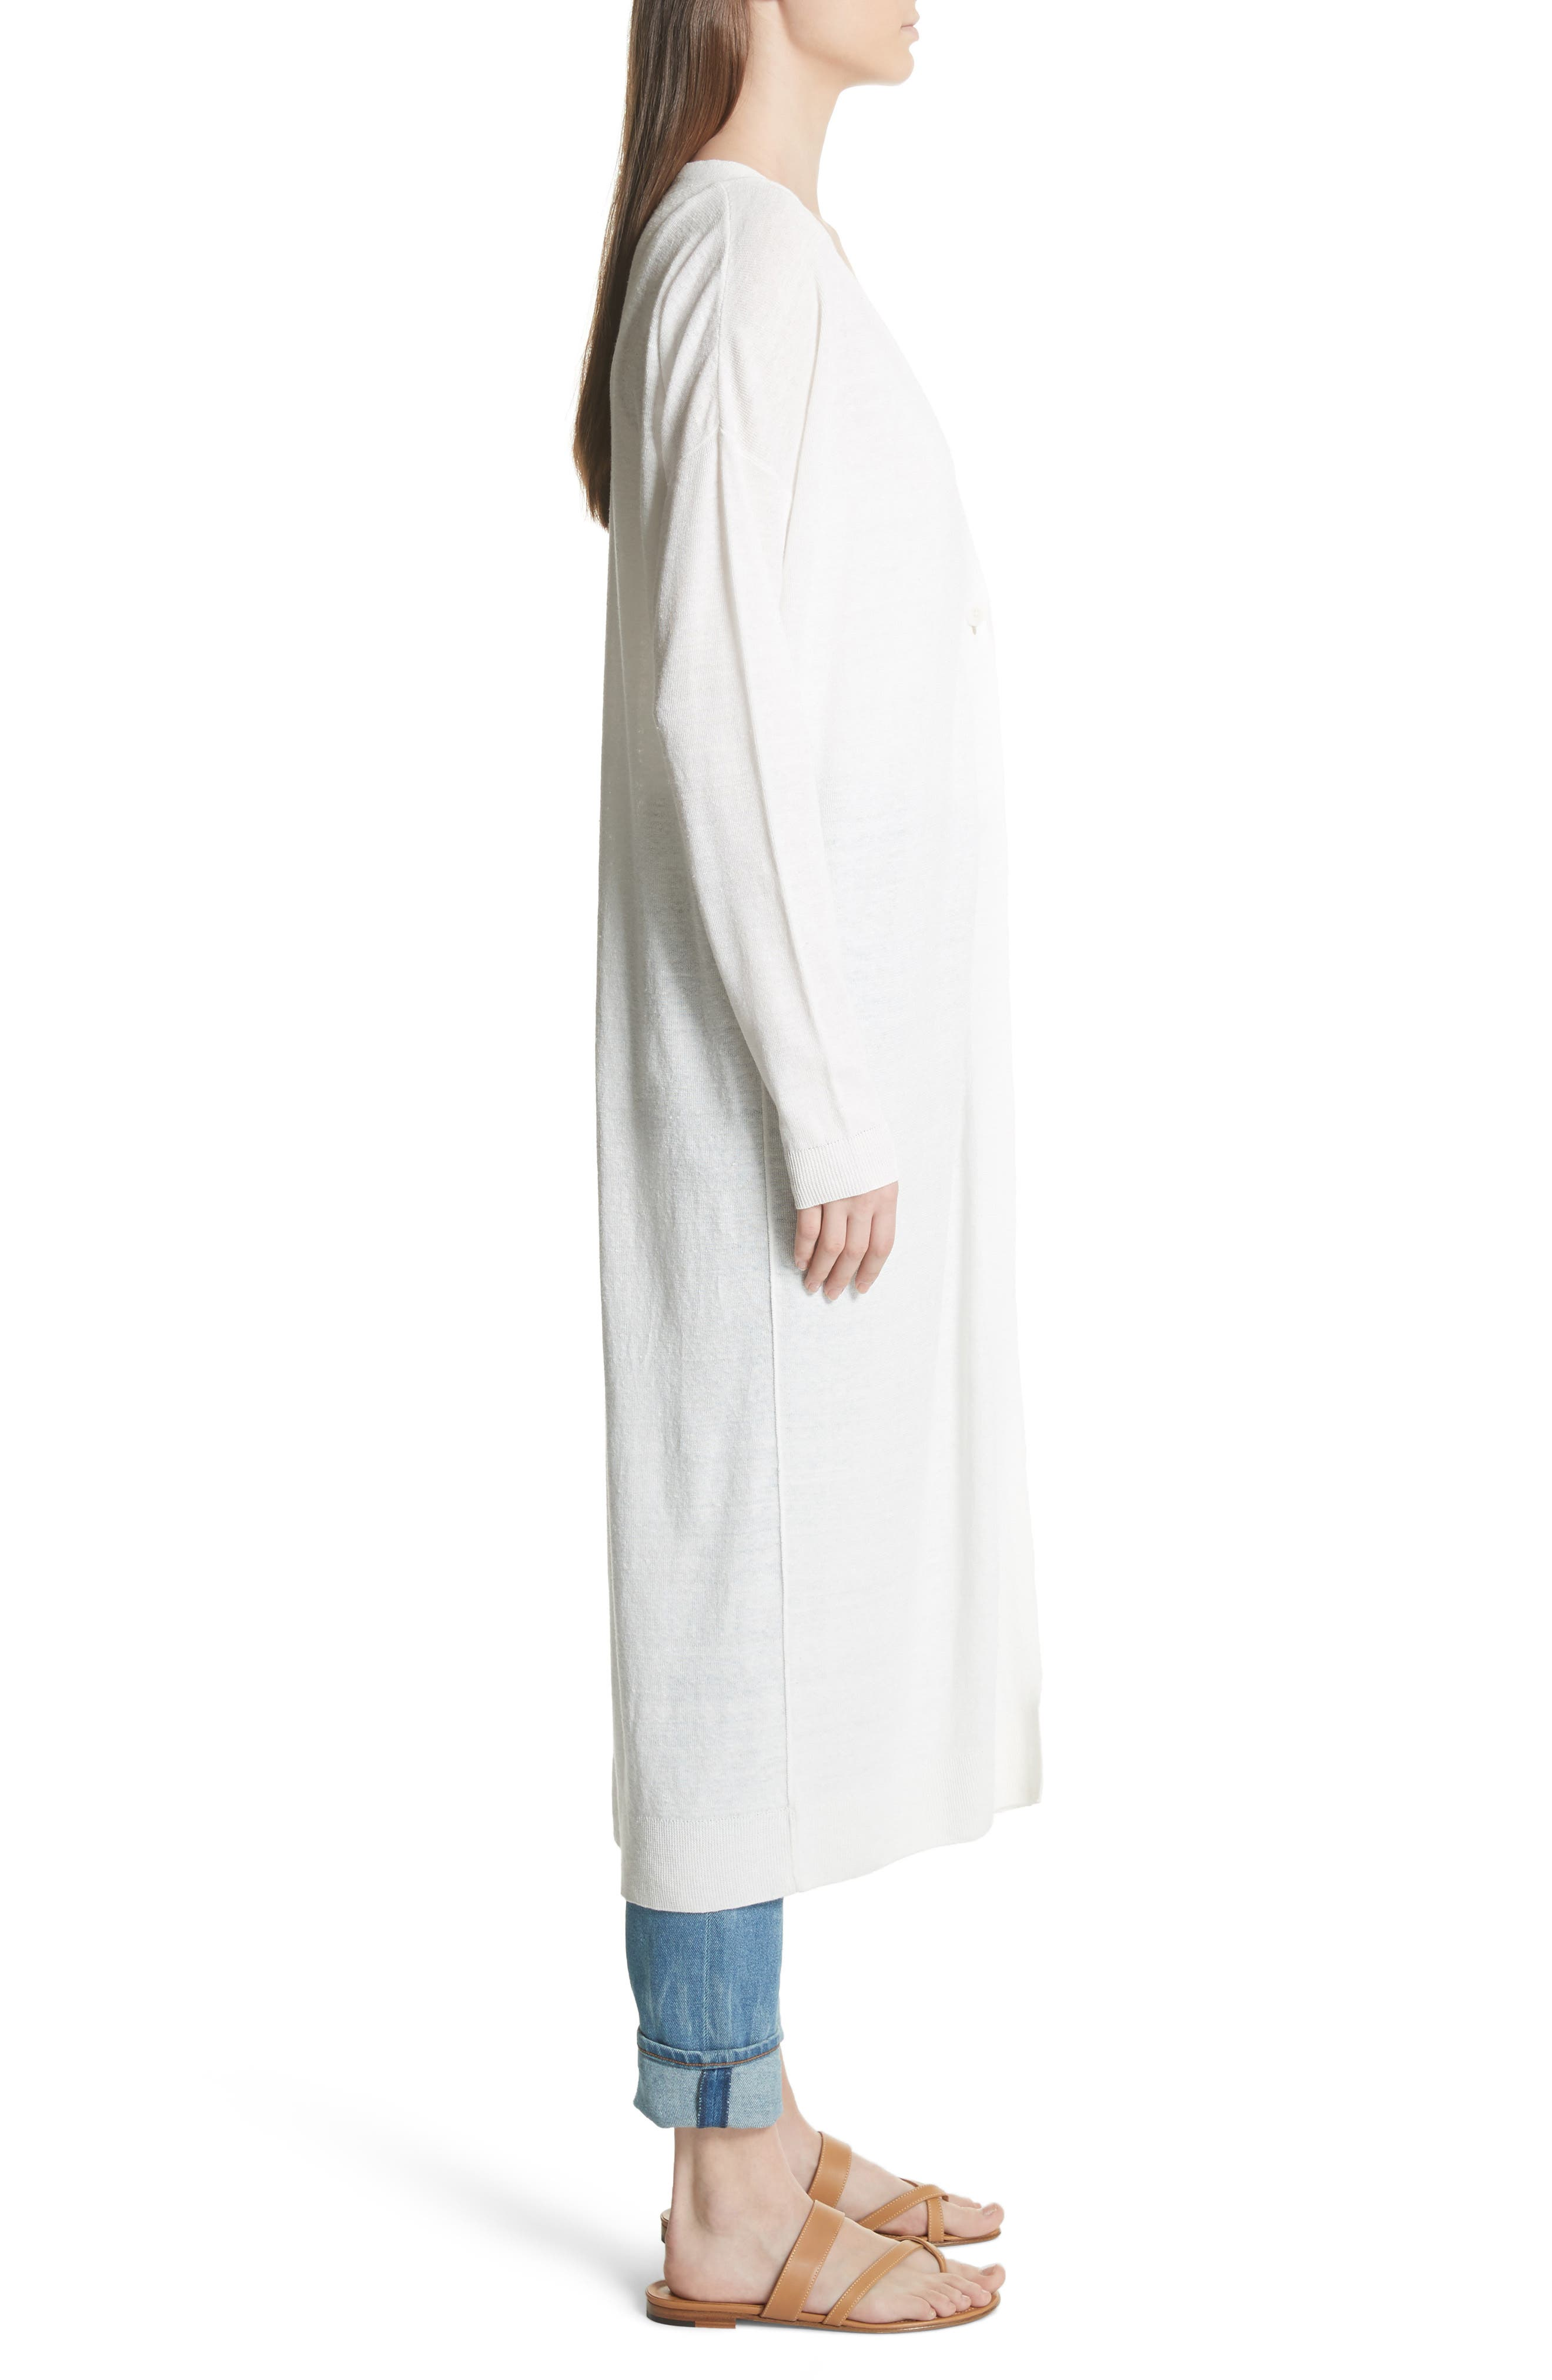 New Harbor Linen Blend Maxi Cardigan,                             Alternate thumbnail 3, color,                             Ivory